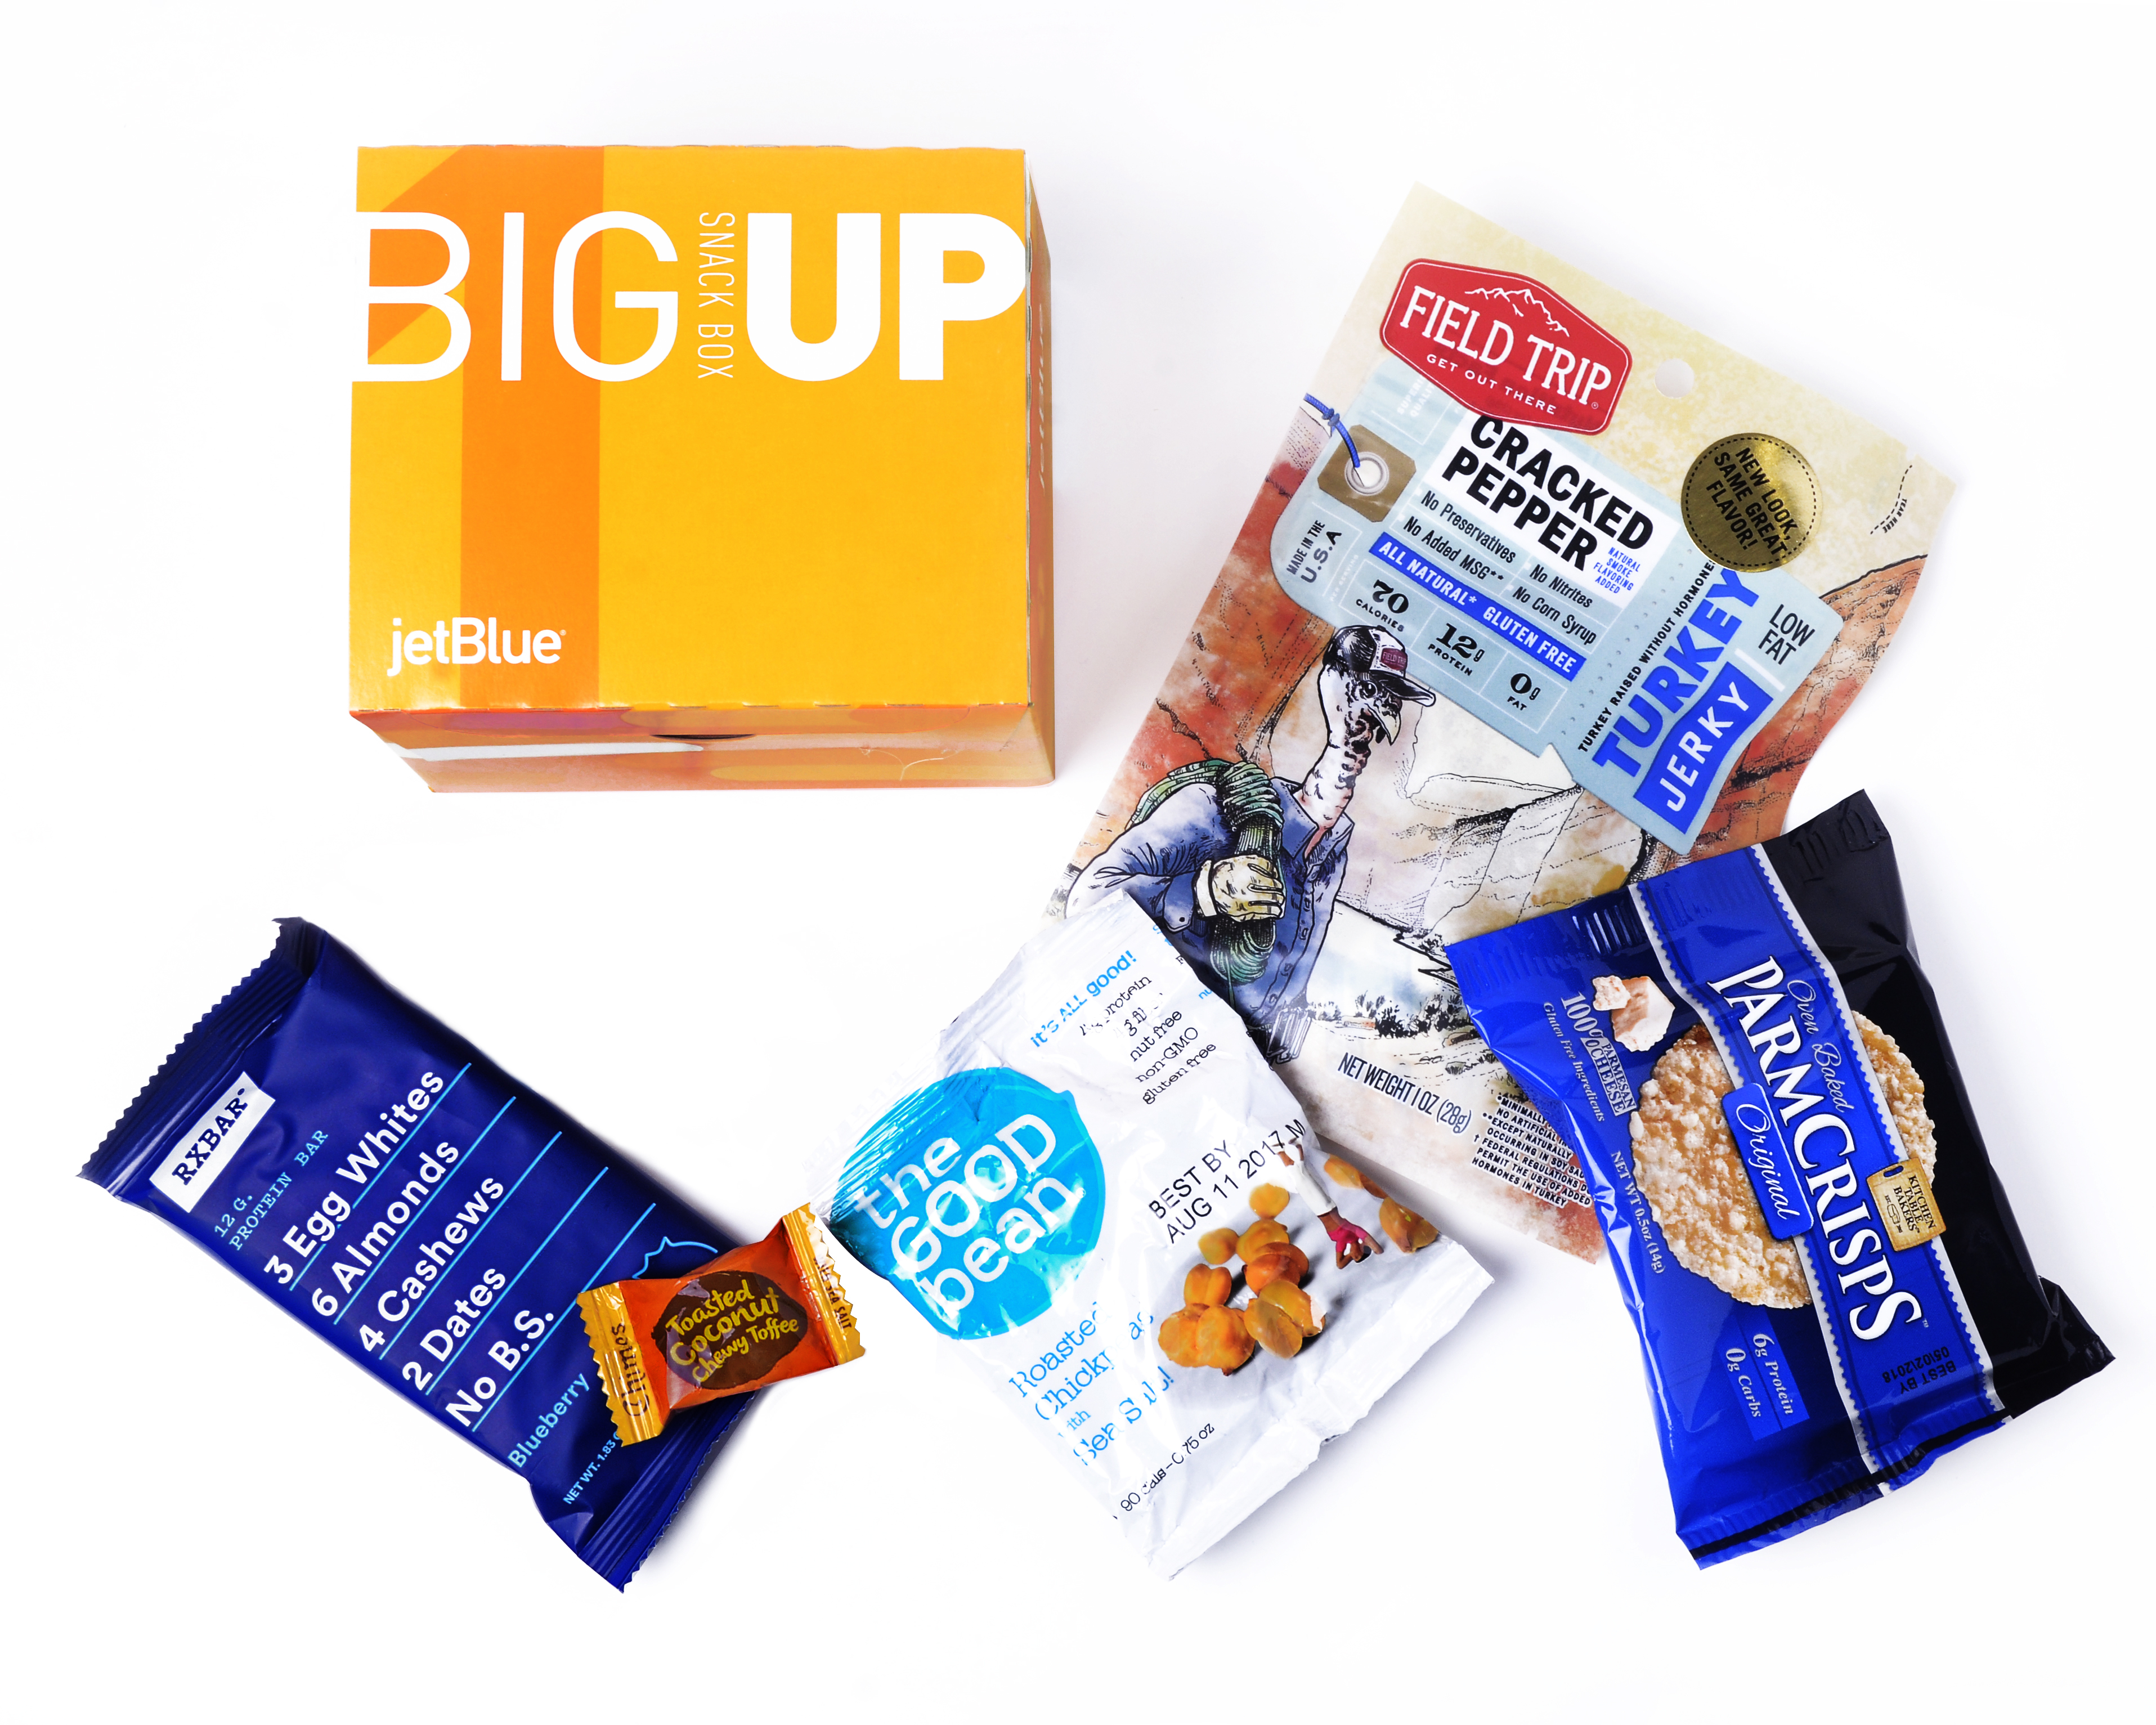 JetBlue's new BigUp Box: This protein-packed selection sends hunger pangs packing with an RXBAR® bar, coconut toffee candy, Field Trip® turkey jerky, roasted chickpeas and parmesan cheese crisps. (Photo: Business Wire)